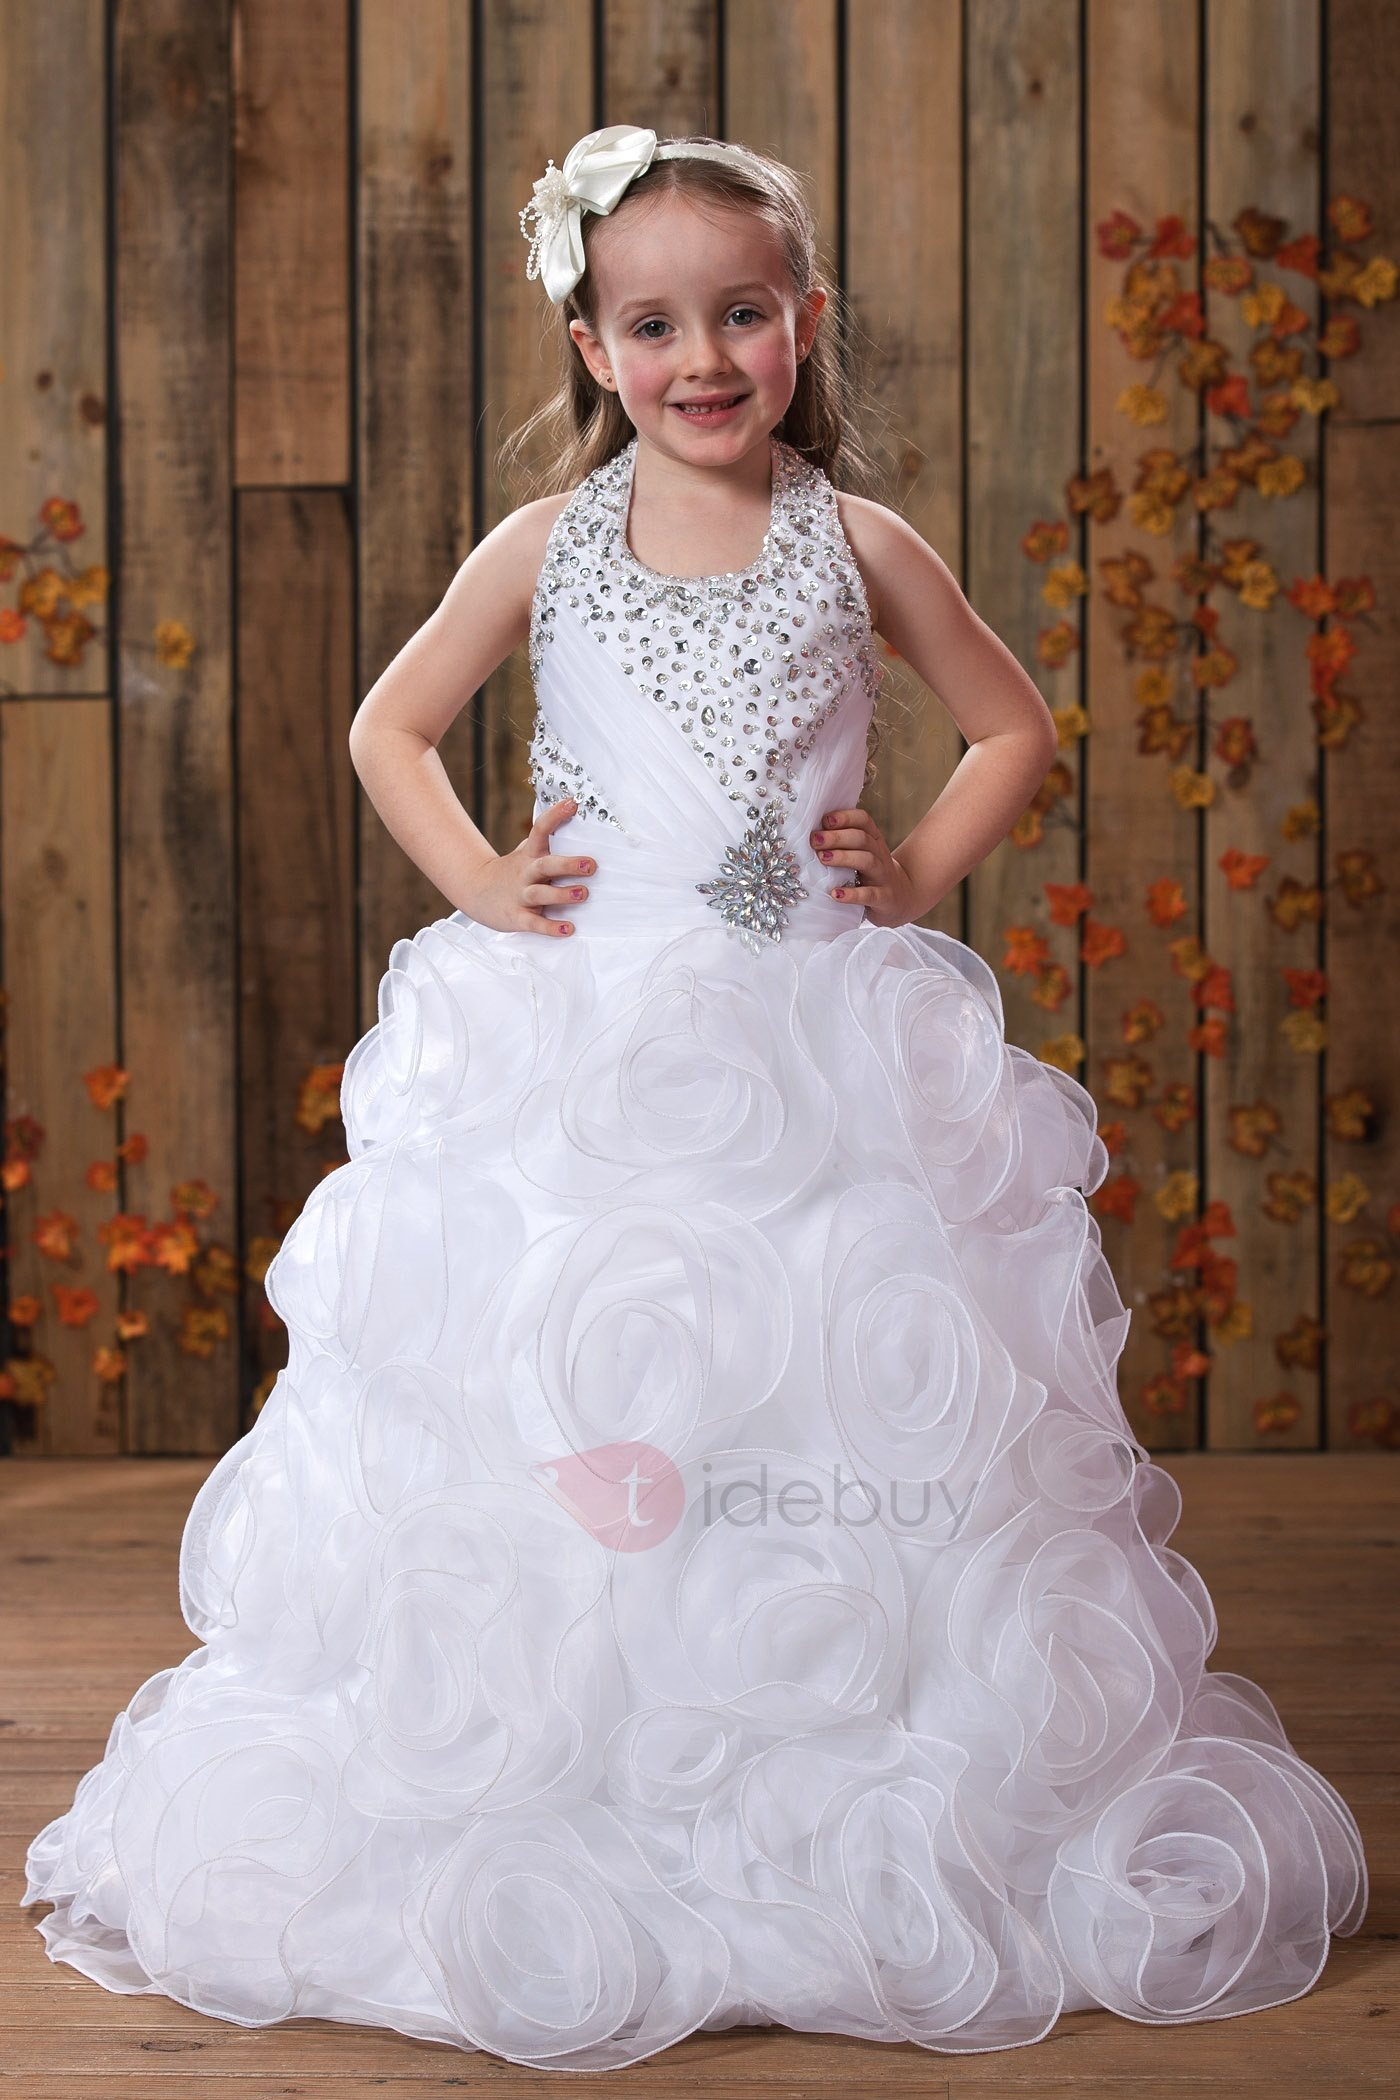 Pretty A-Line Floor-length Flowers Halter Embellishing Flower Girl Dress